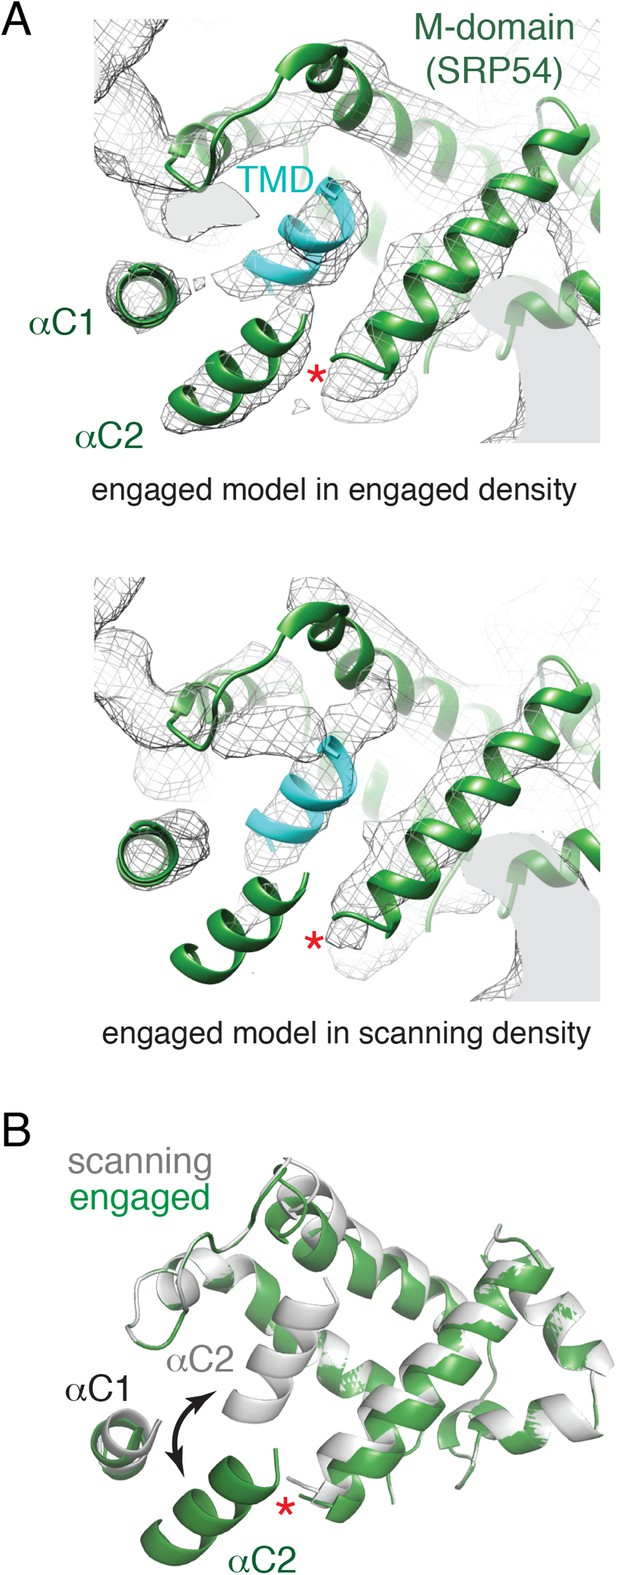 Structures of the scanning and engaged states of the mammalian SRP